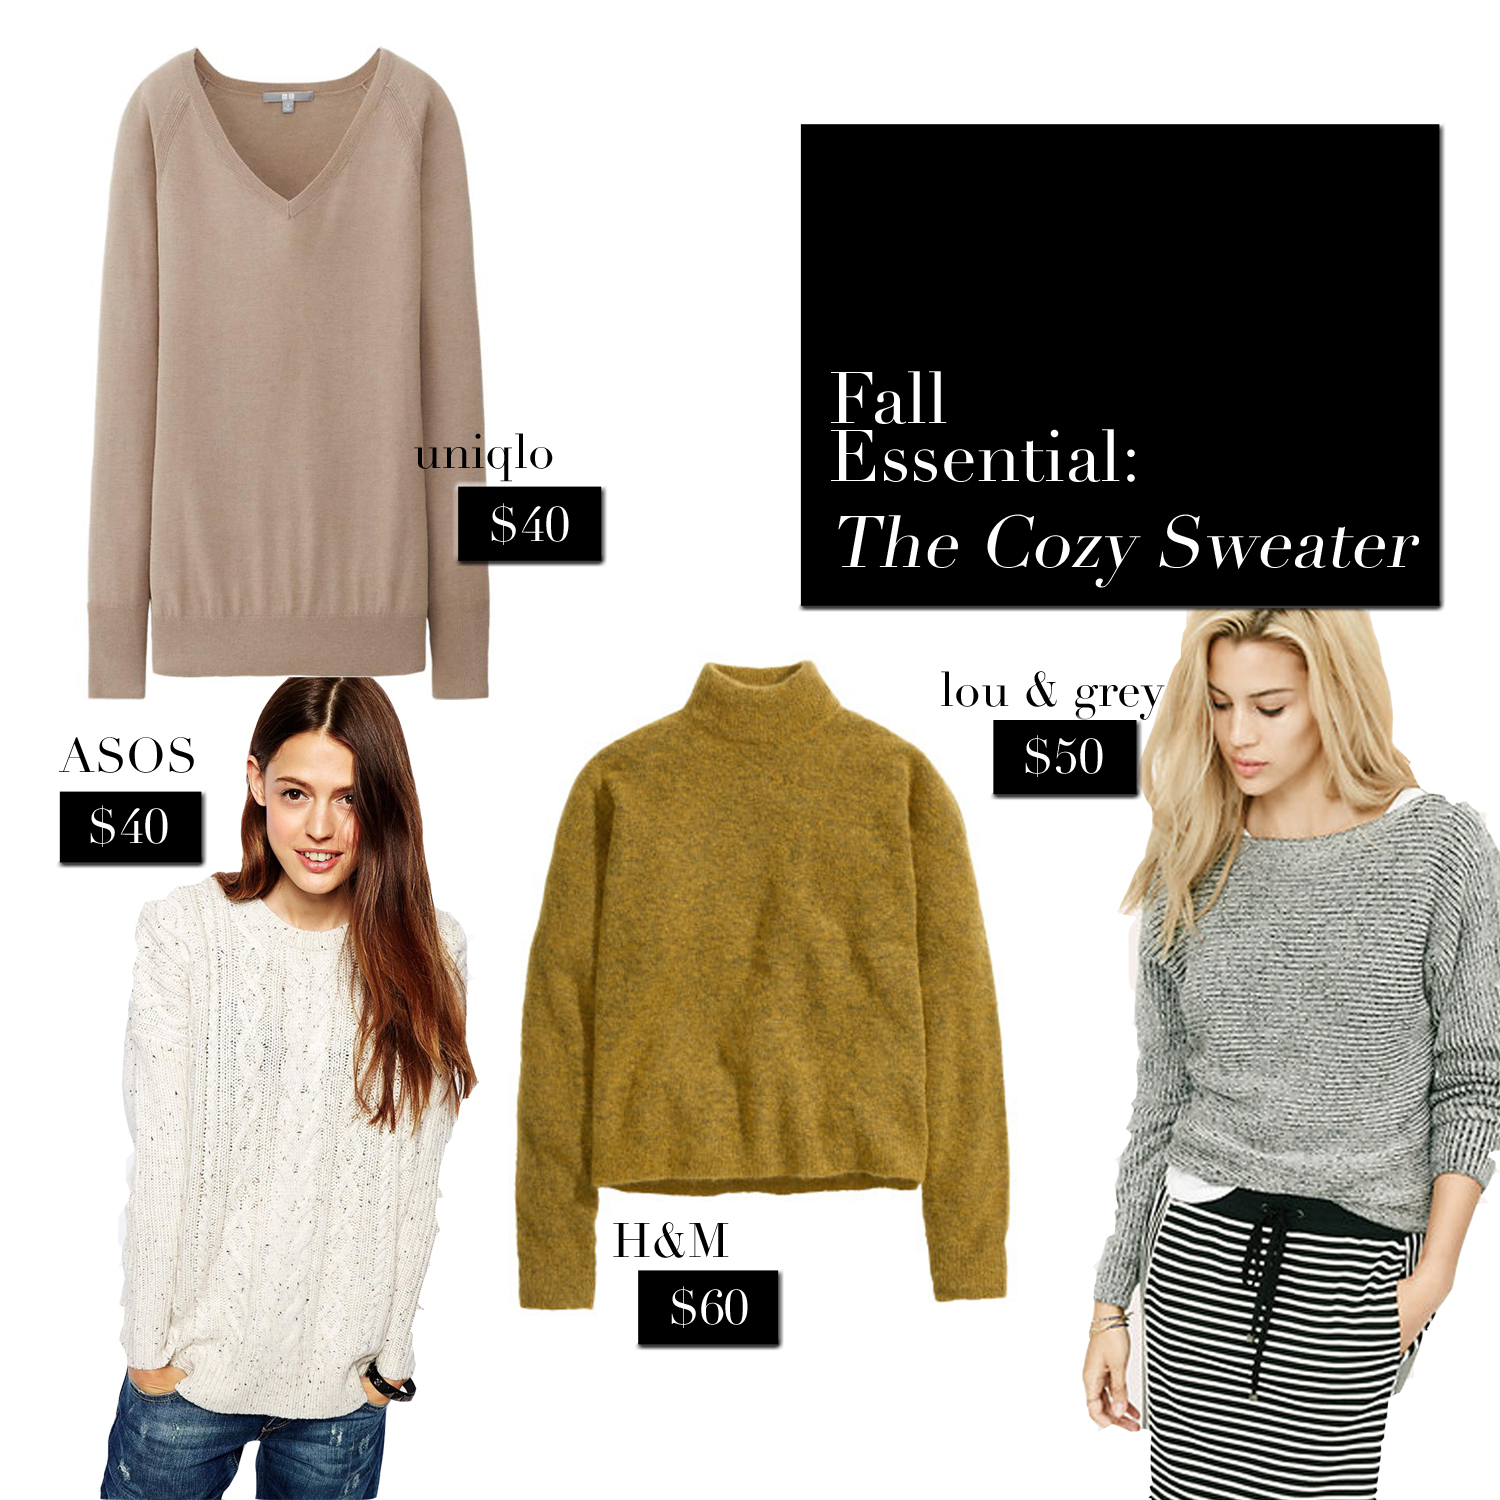 fall-essential-cozy-sweater